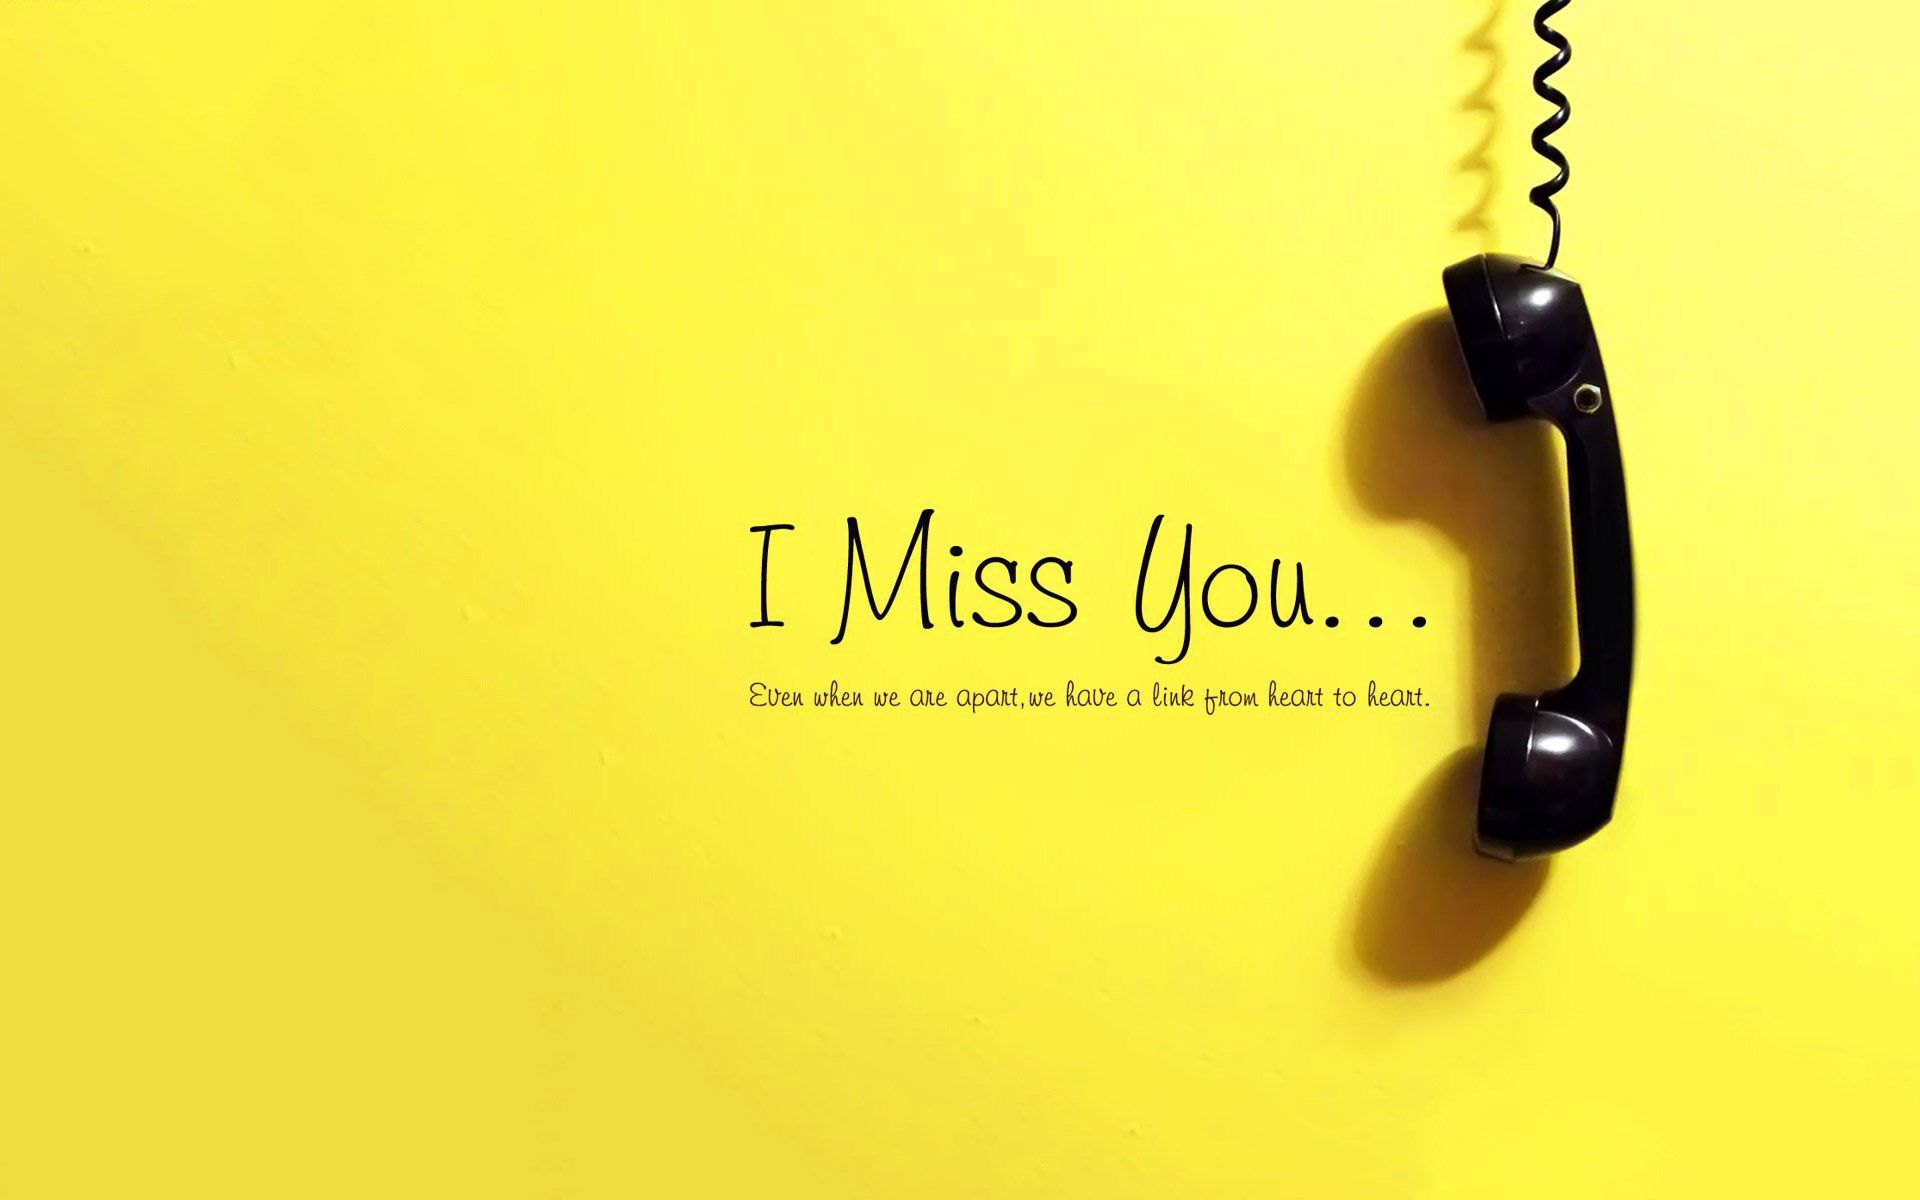 Hd I Miss You Wallpaper For Him Or Her Love Romantic Wallpapers Chobirdokan I Miss You Meme I Miss You Wallpaper I Miss You